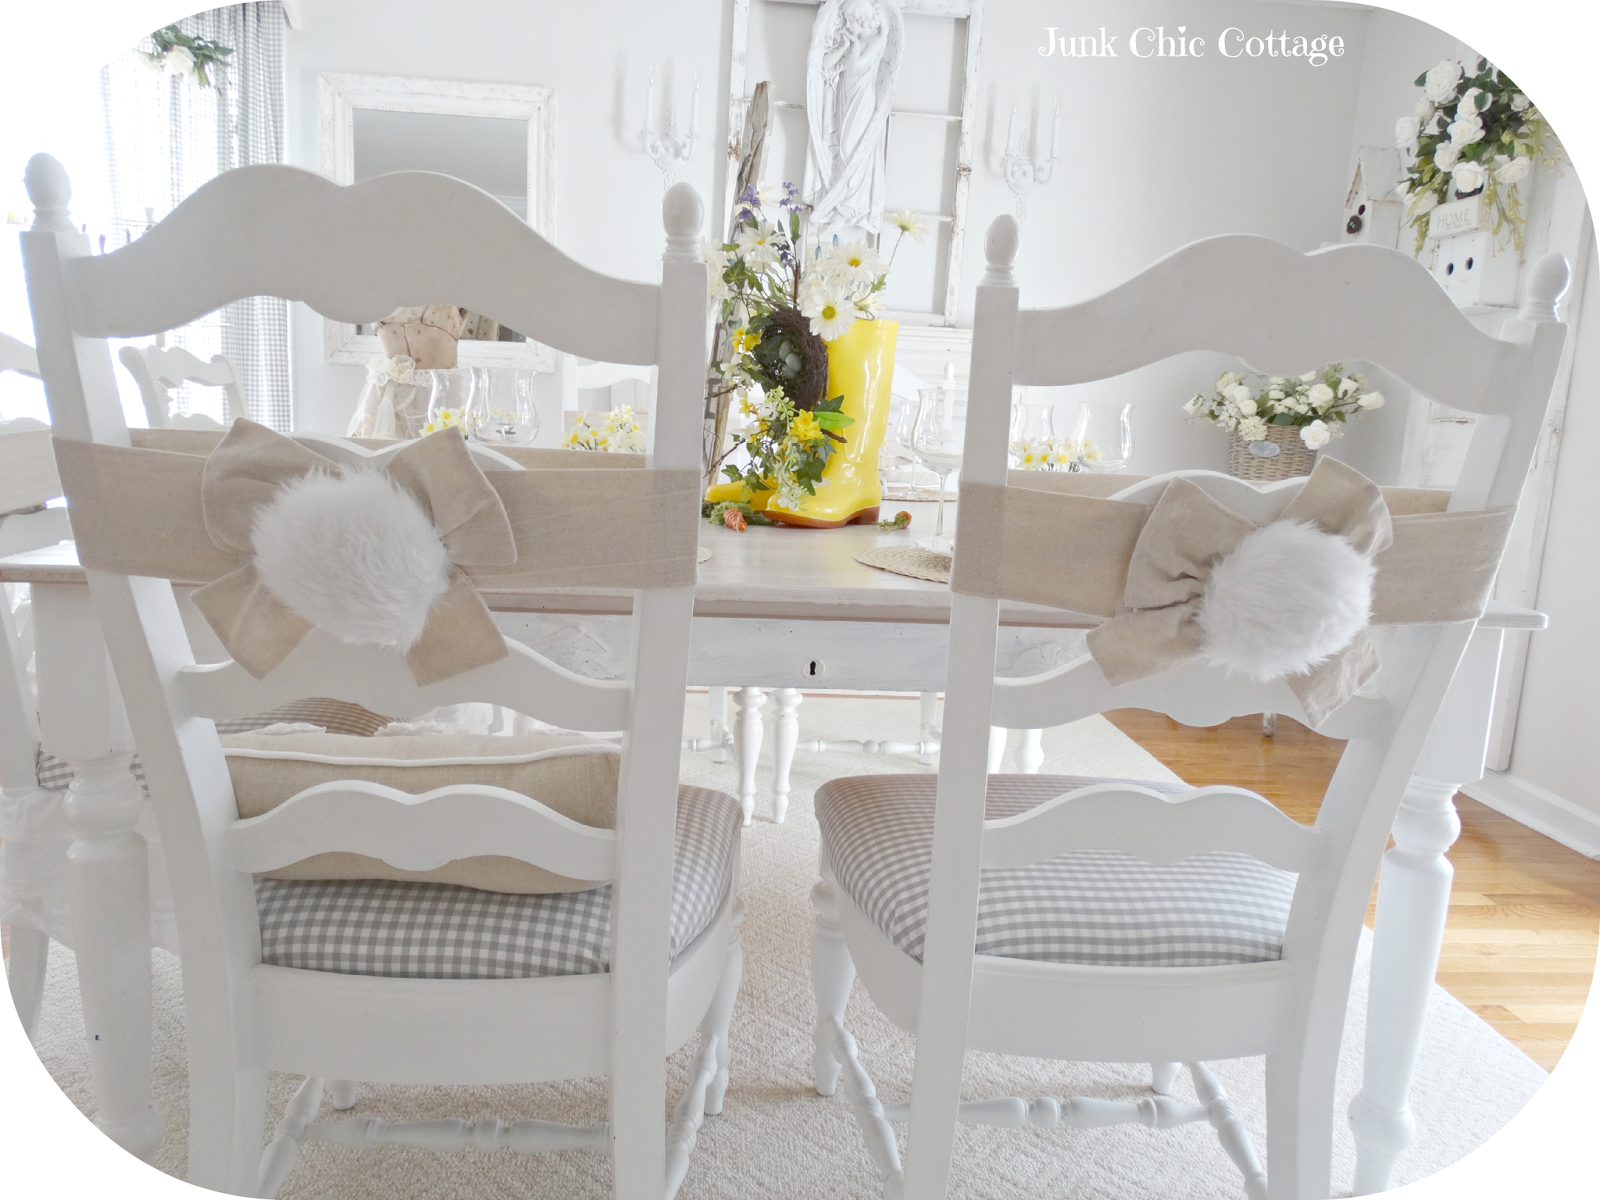 Junk Chic Cottage Easter Table Setting